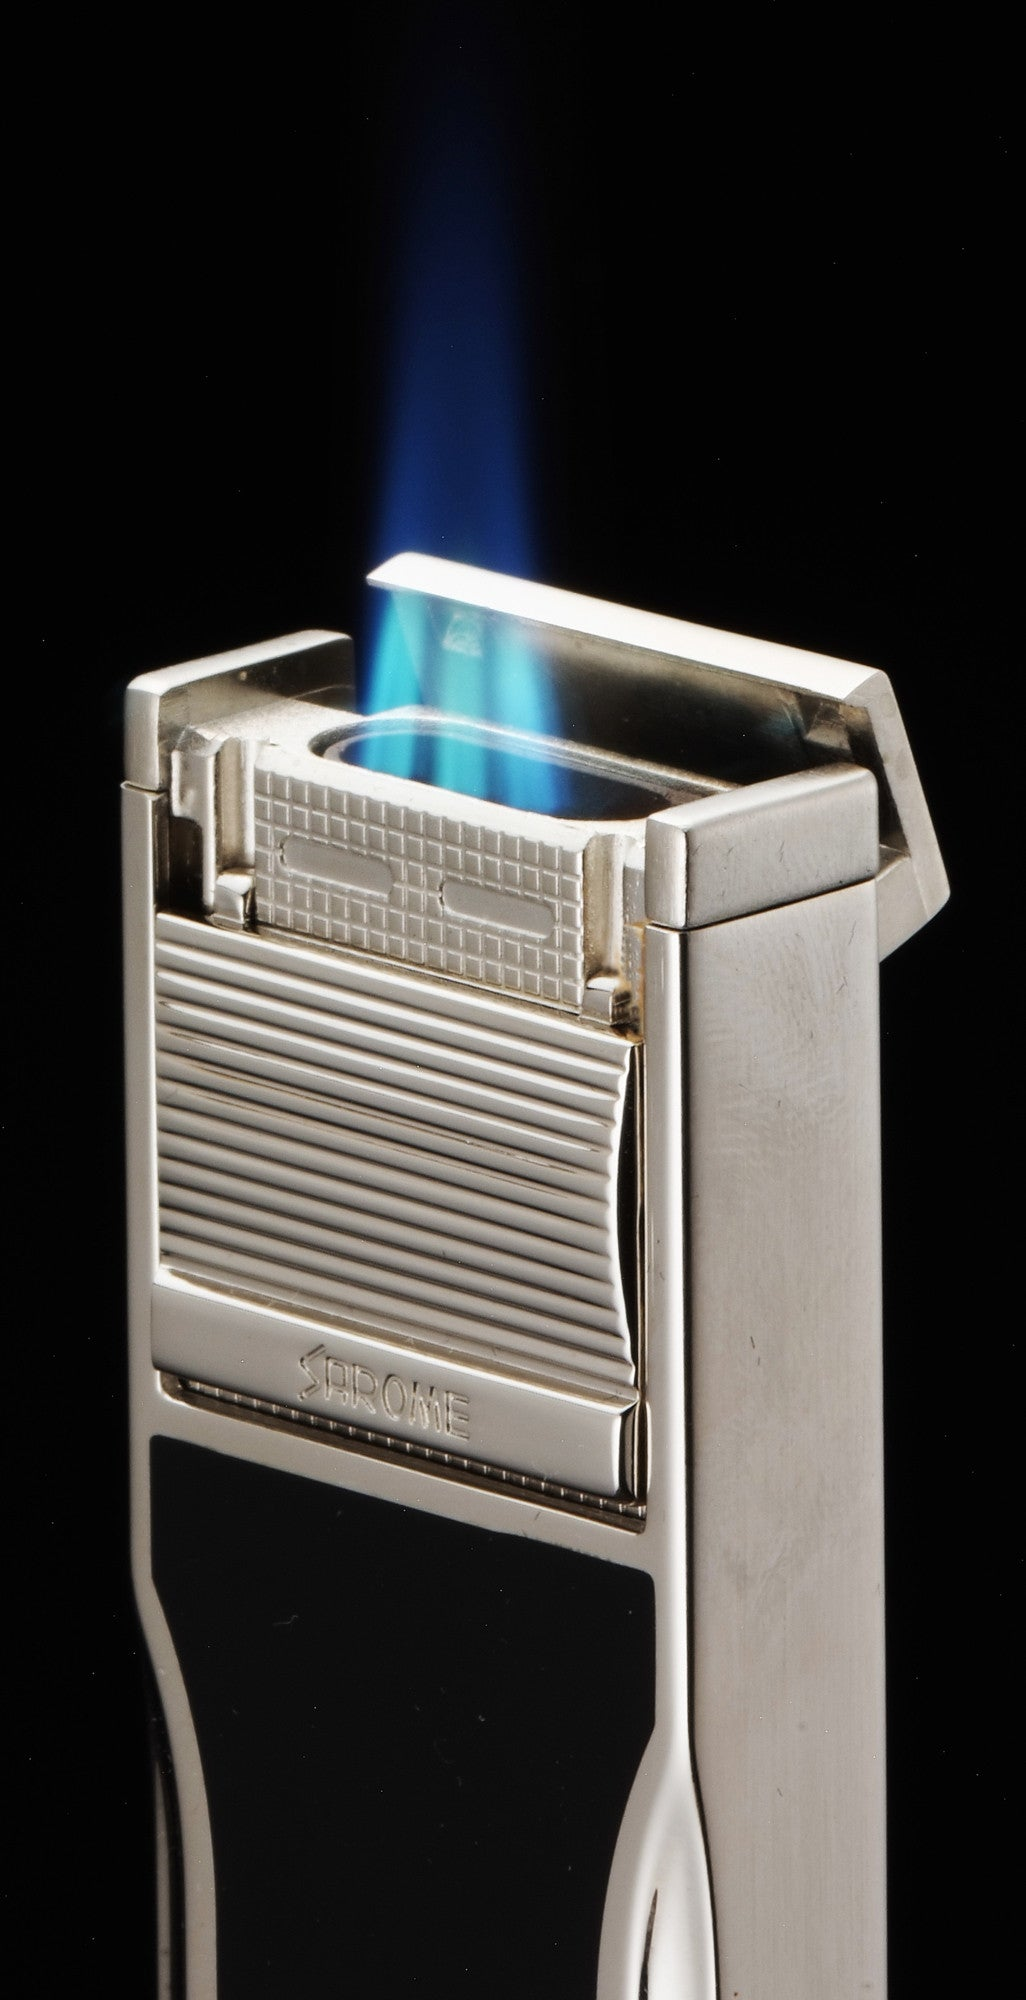 Sarome Flat Triple Torch  Cigar Cigarette Lighter w/ Cigar Punch 3BM1-03 Silver/ Blue epoxy resi